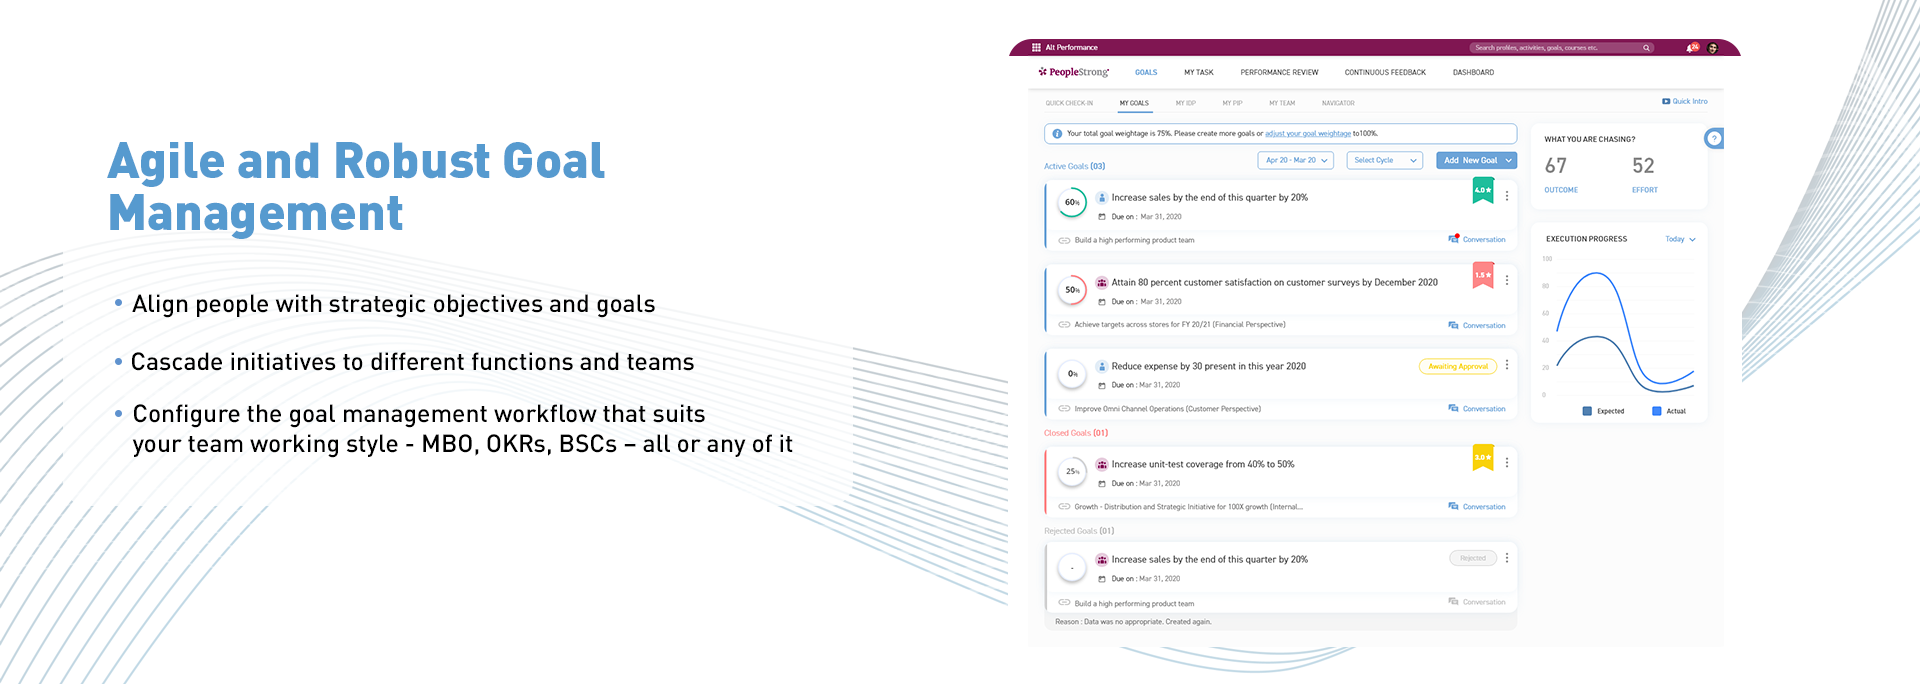 Banner-1 (Agile and Robust Goal Management)